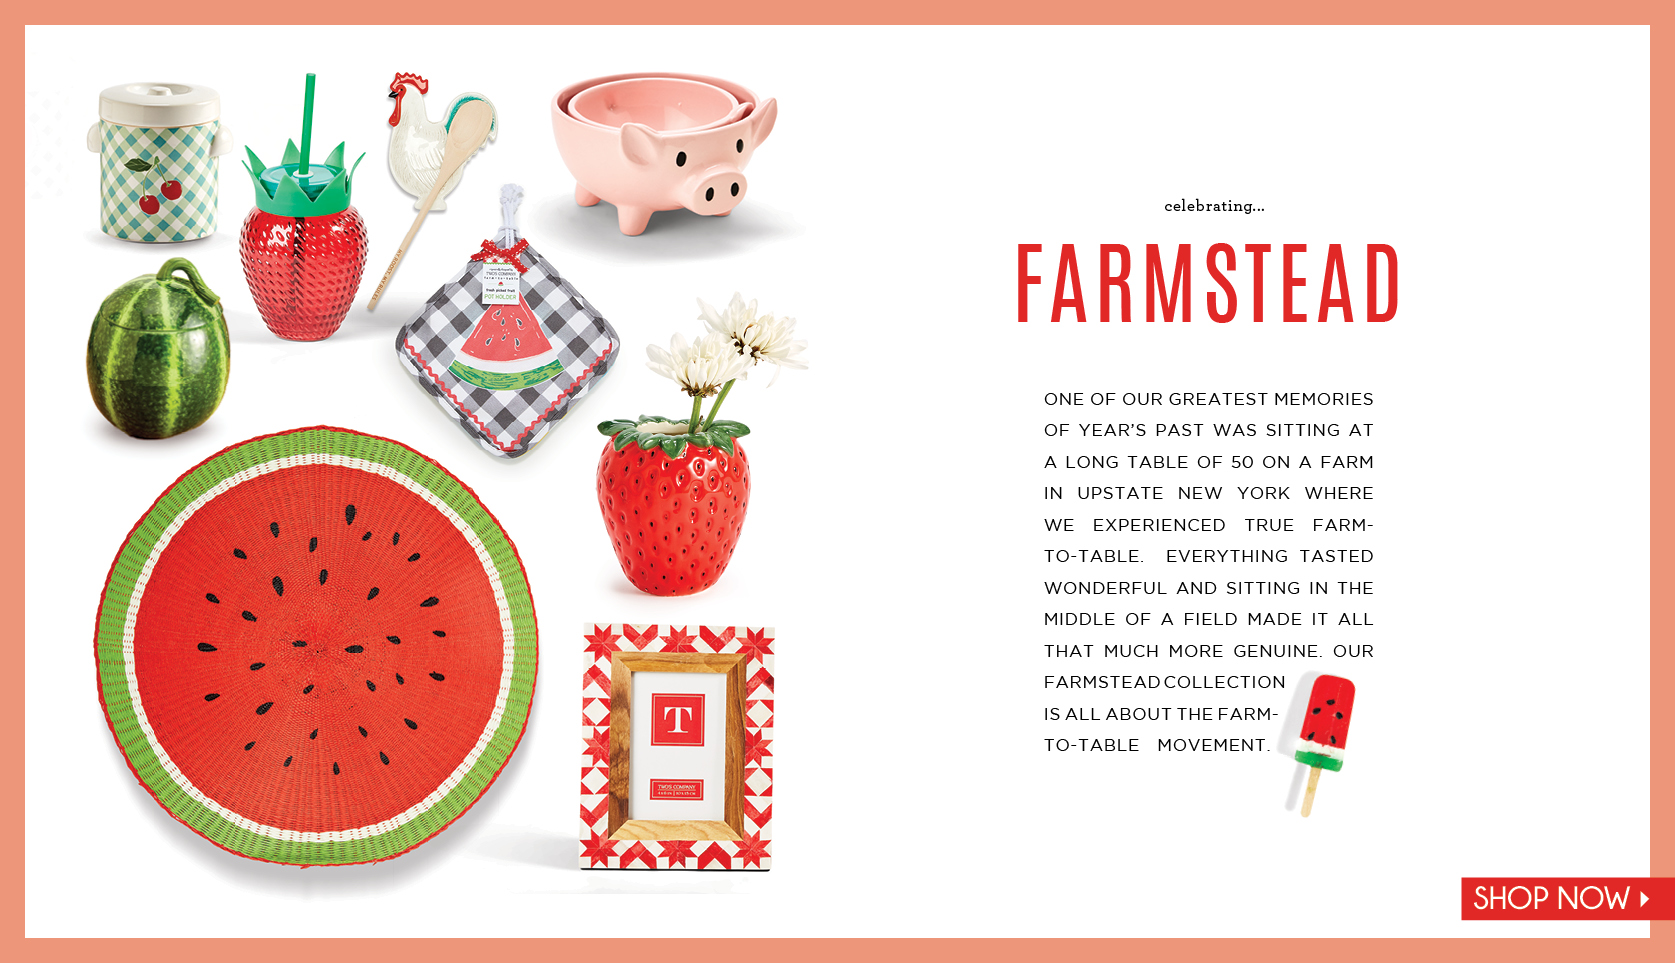 Farmstead Collection image